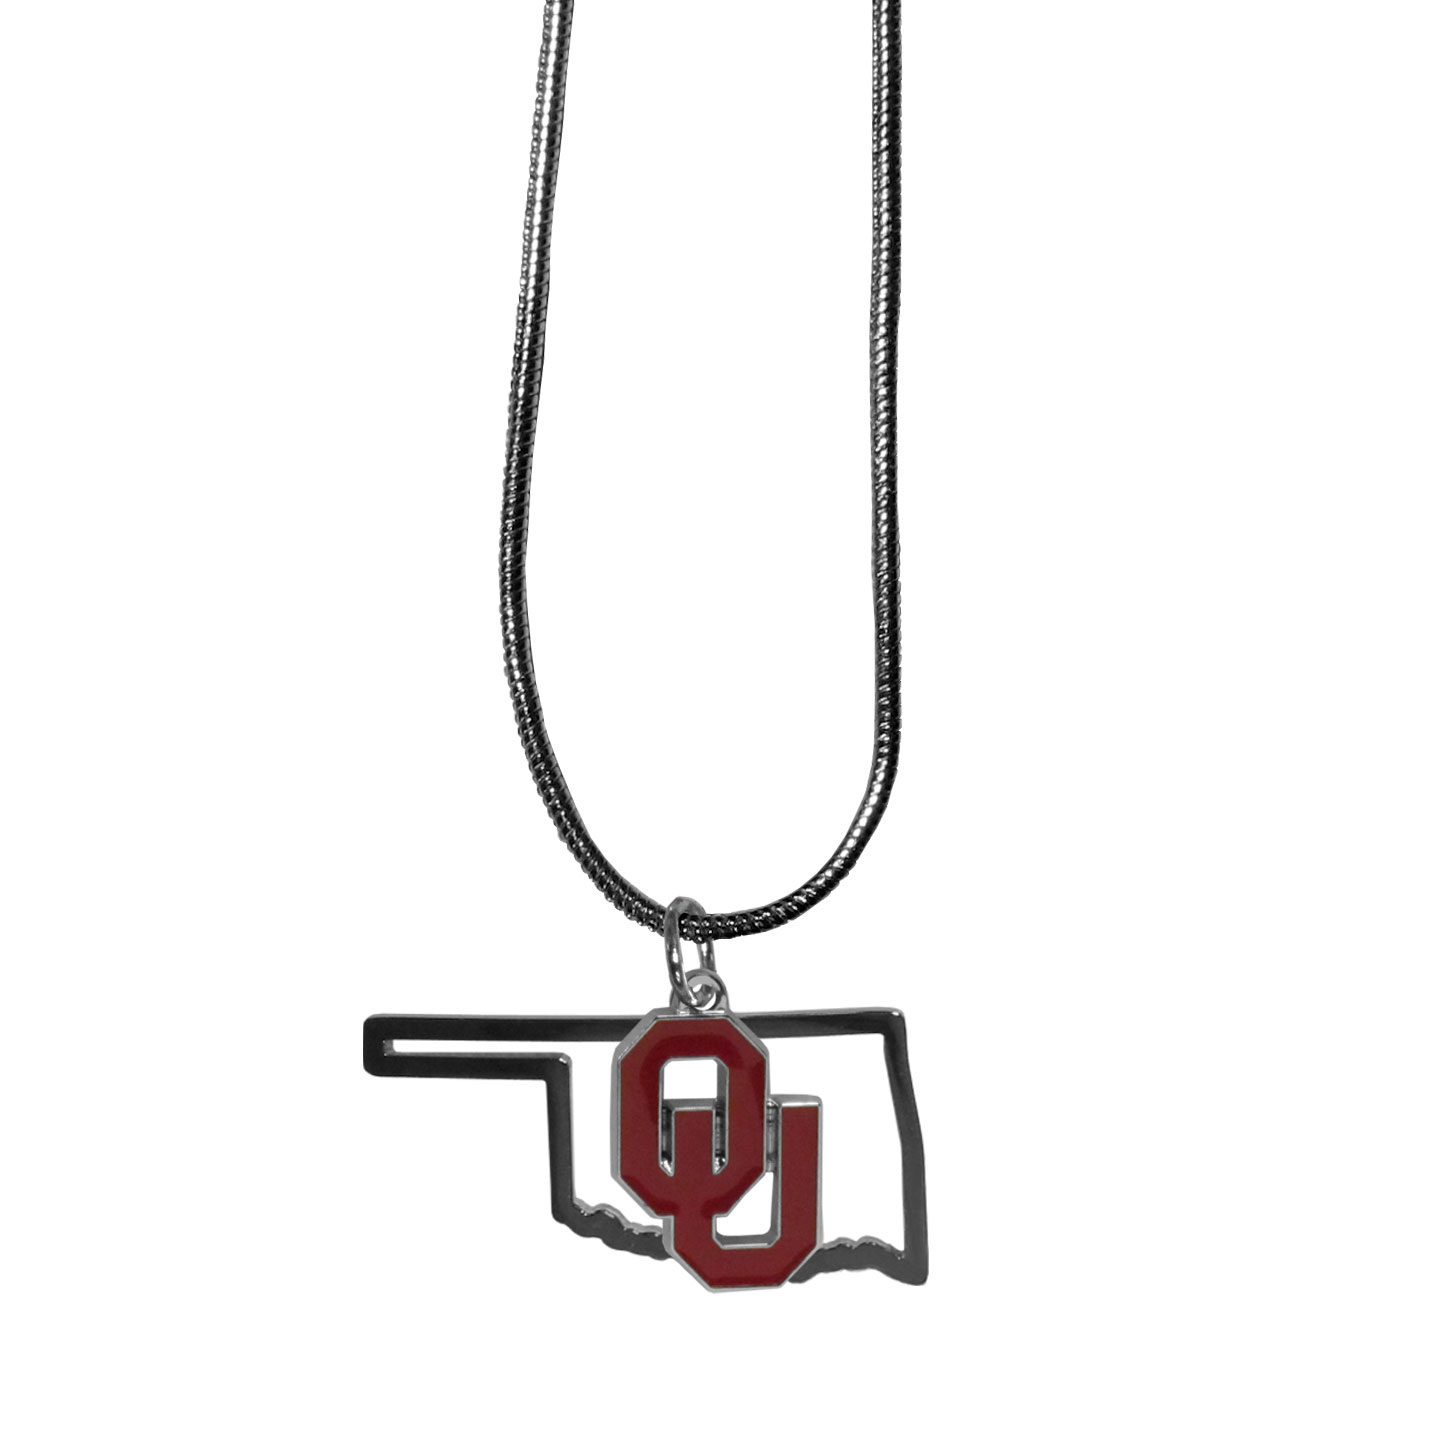 Oklahoma Sooners State Charm Necklace - Get in on the trend! State themes are a trend that just keeps getting more popular and these necklaces take the state style and give it a sporty twist with a Oklahoma Sooners added to the state outline charm. The come on a snake chain that is 22 inches long.